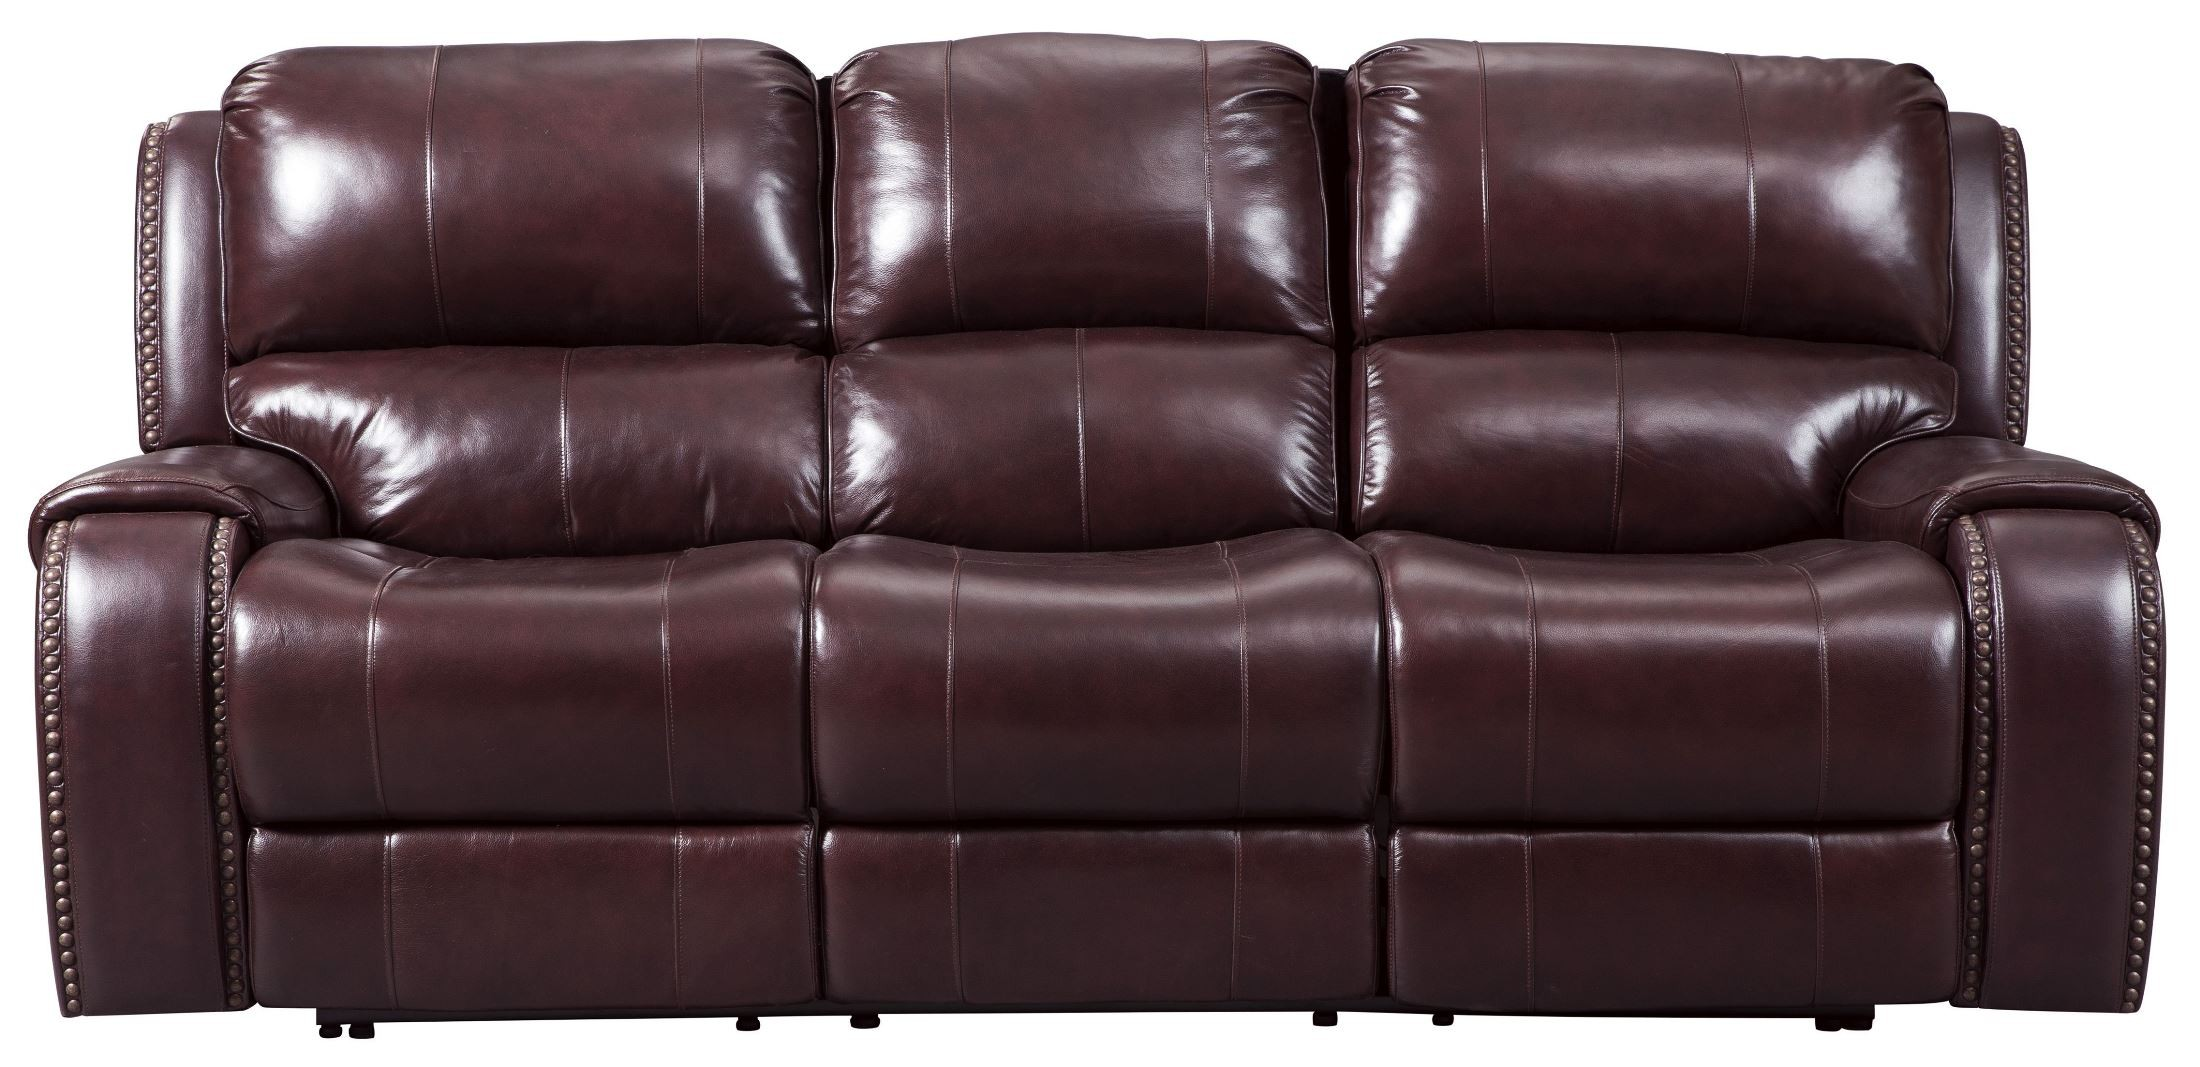 Gilmanton Burgundy Power Reclining Sofa With Adjustable